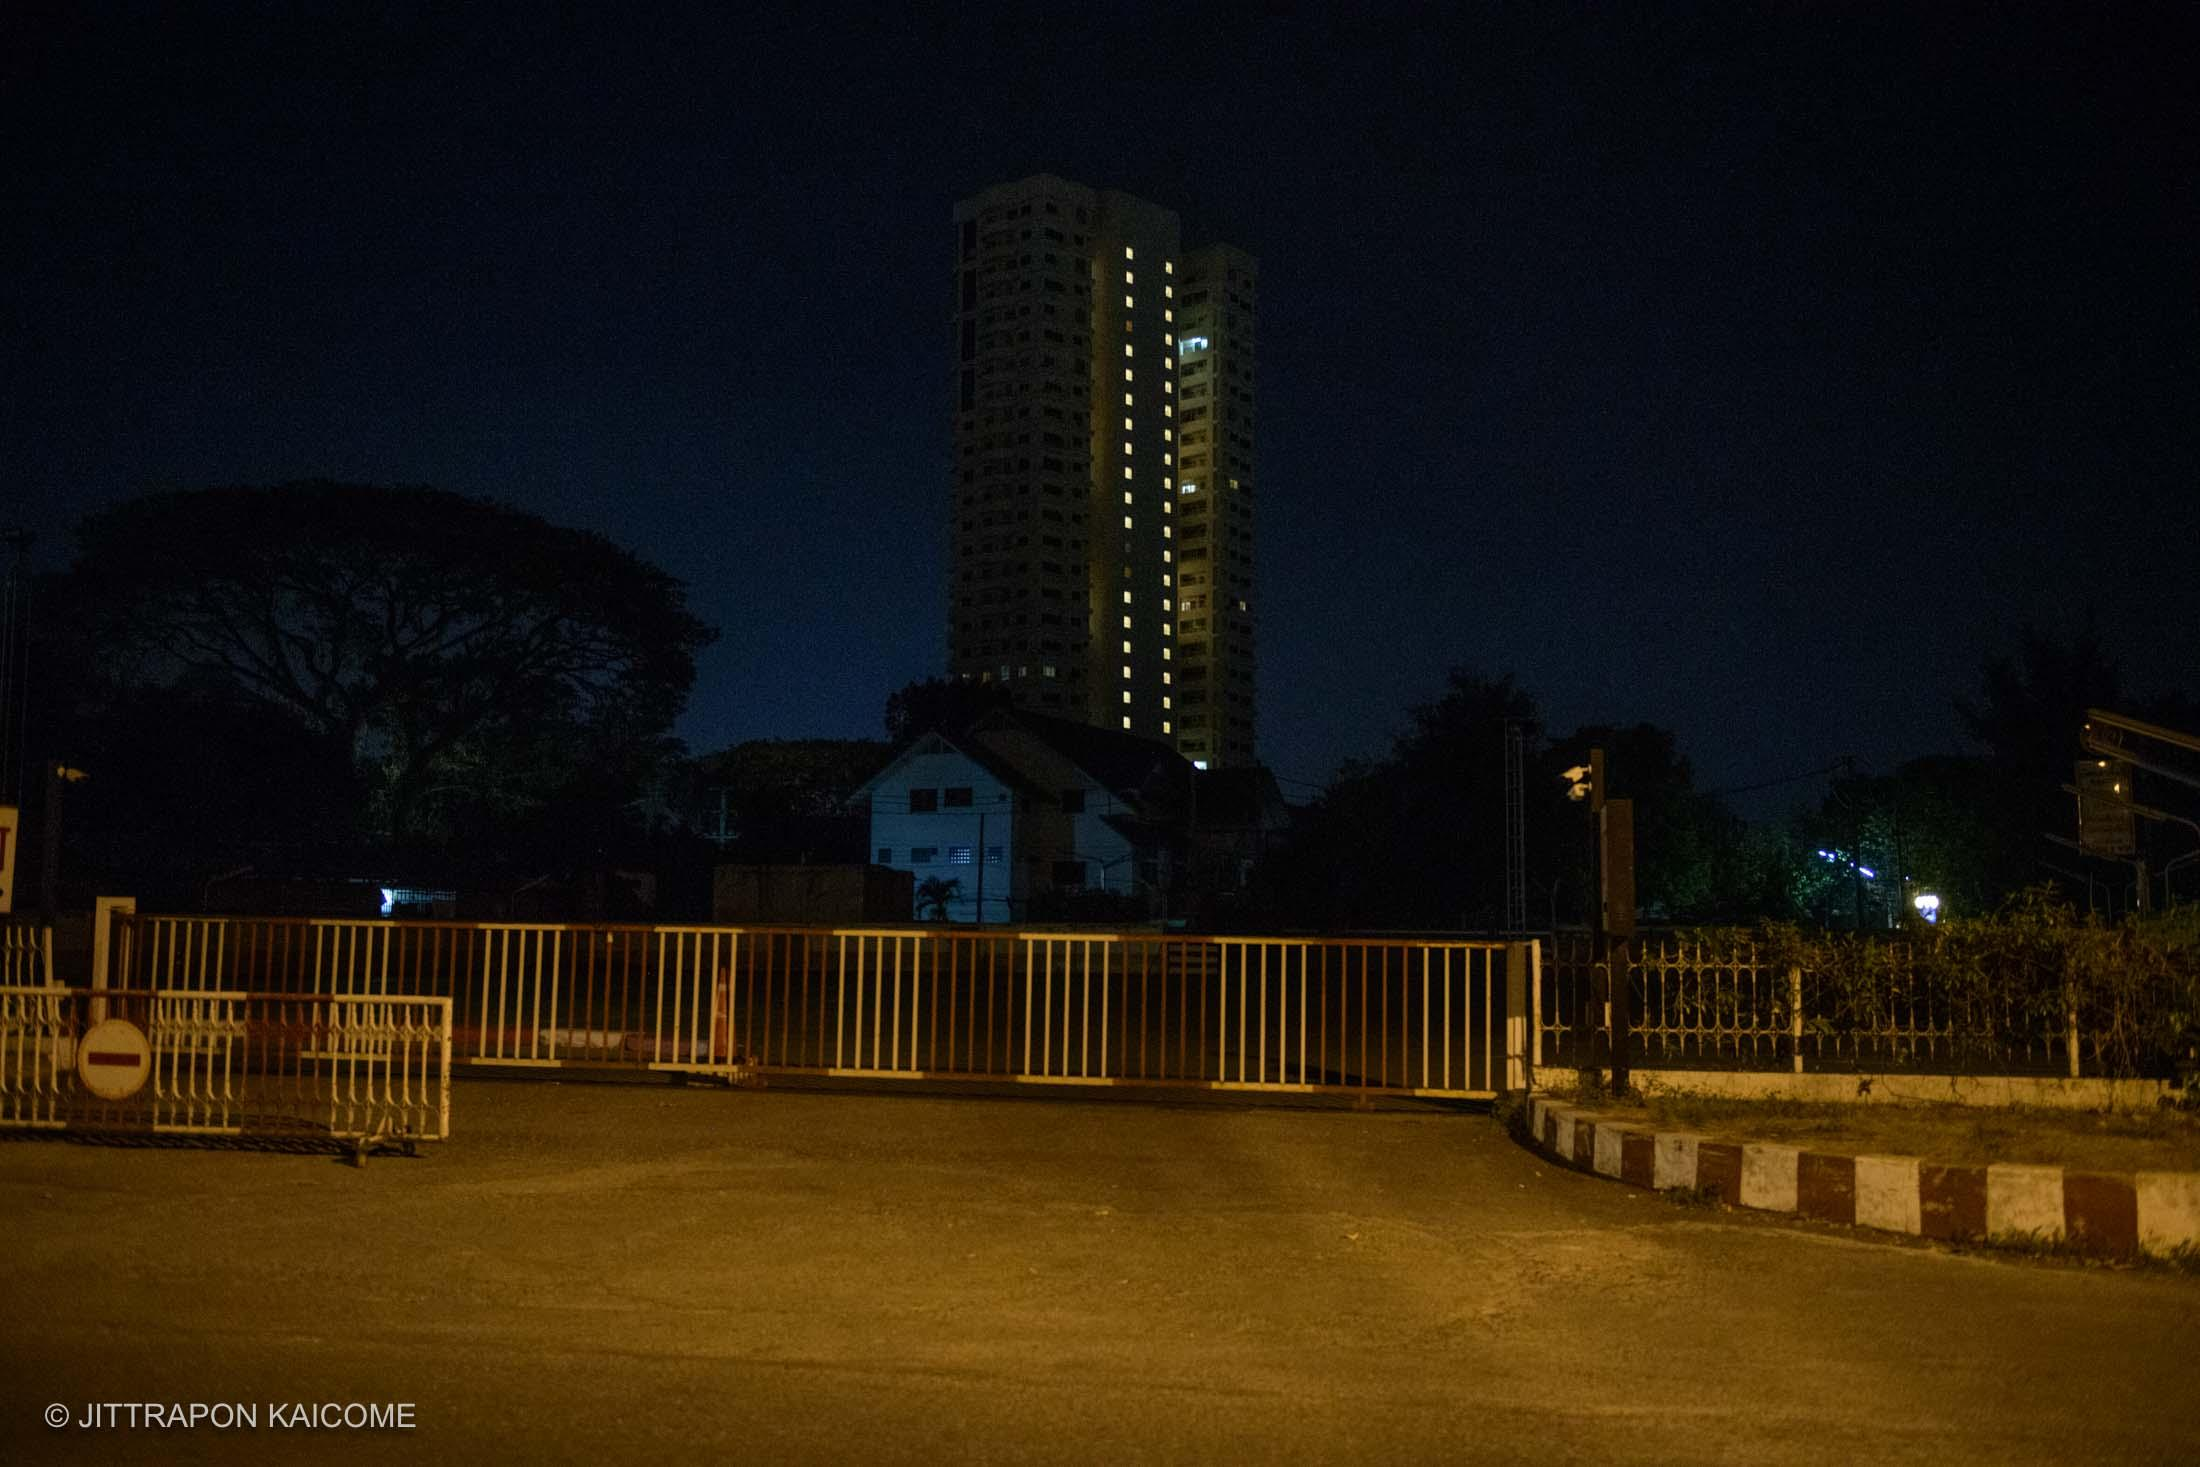 09.07 PM -Empty hotel near the Ping river. Chiang Mai, Thailand in March 25, 2020.